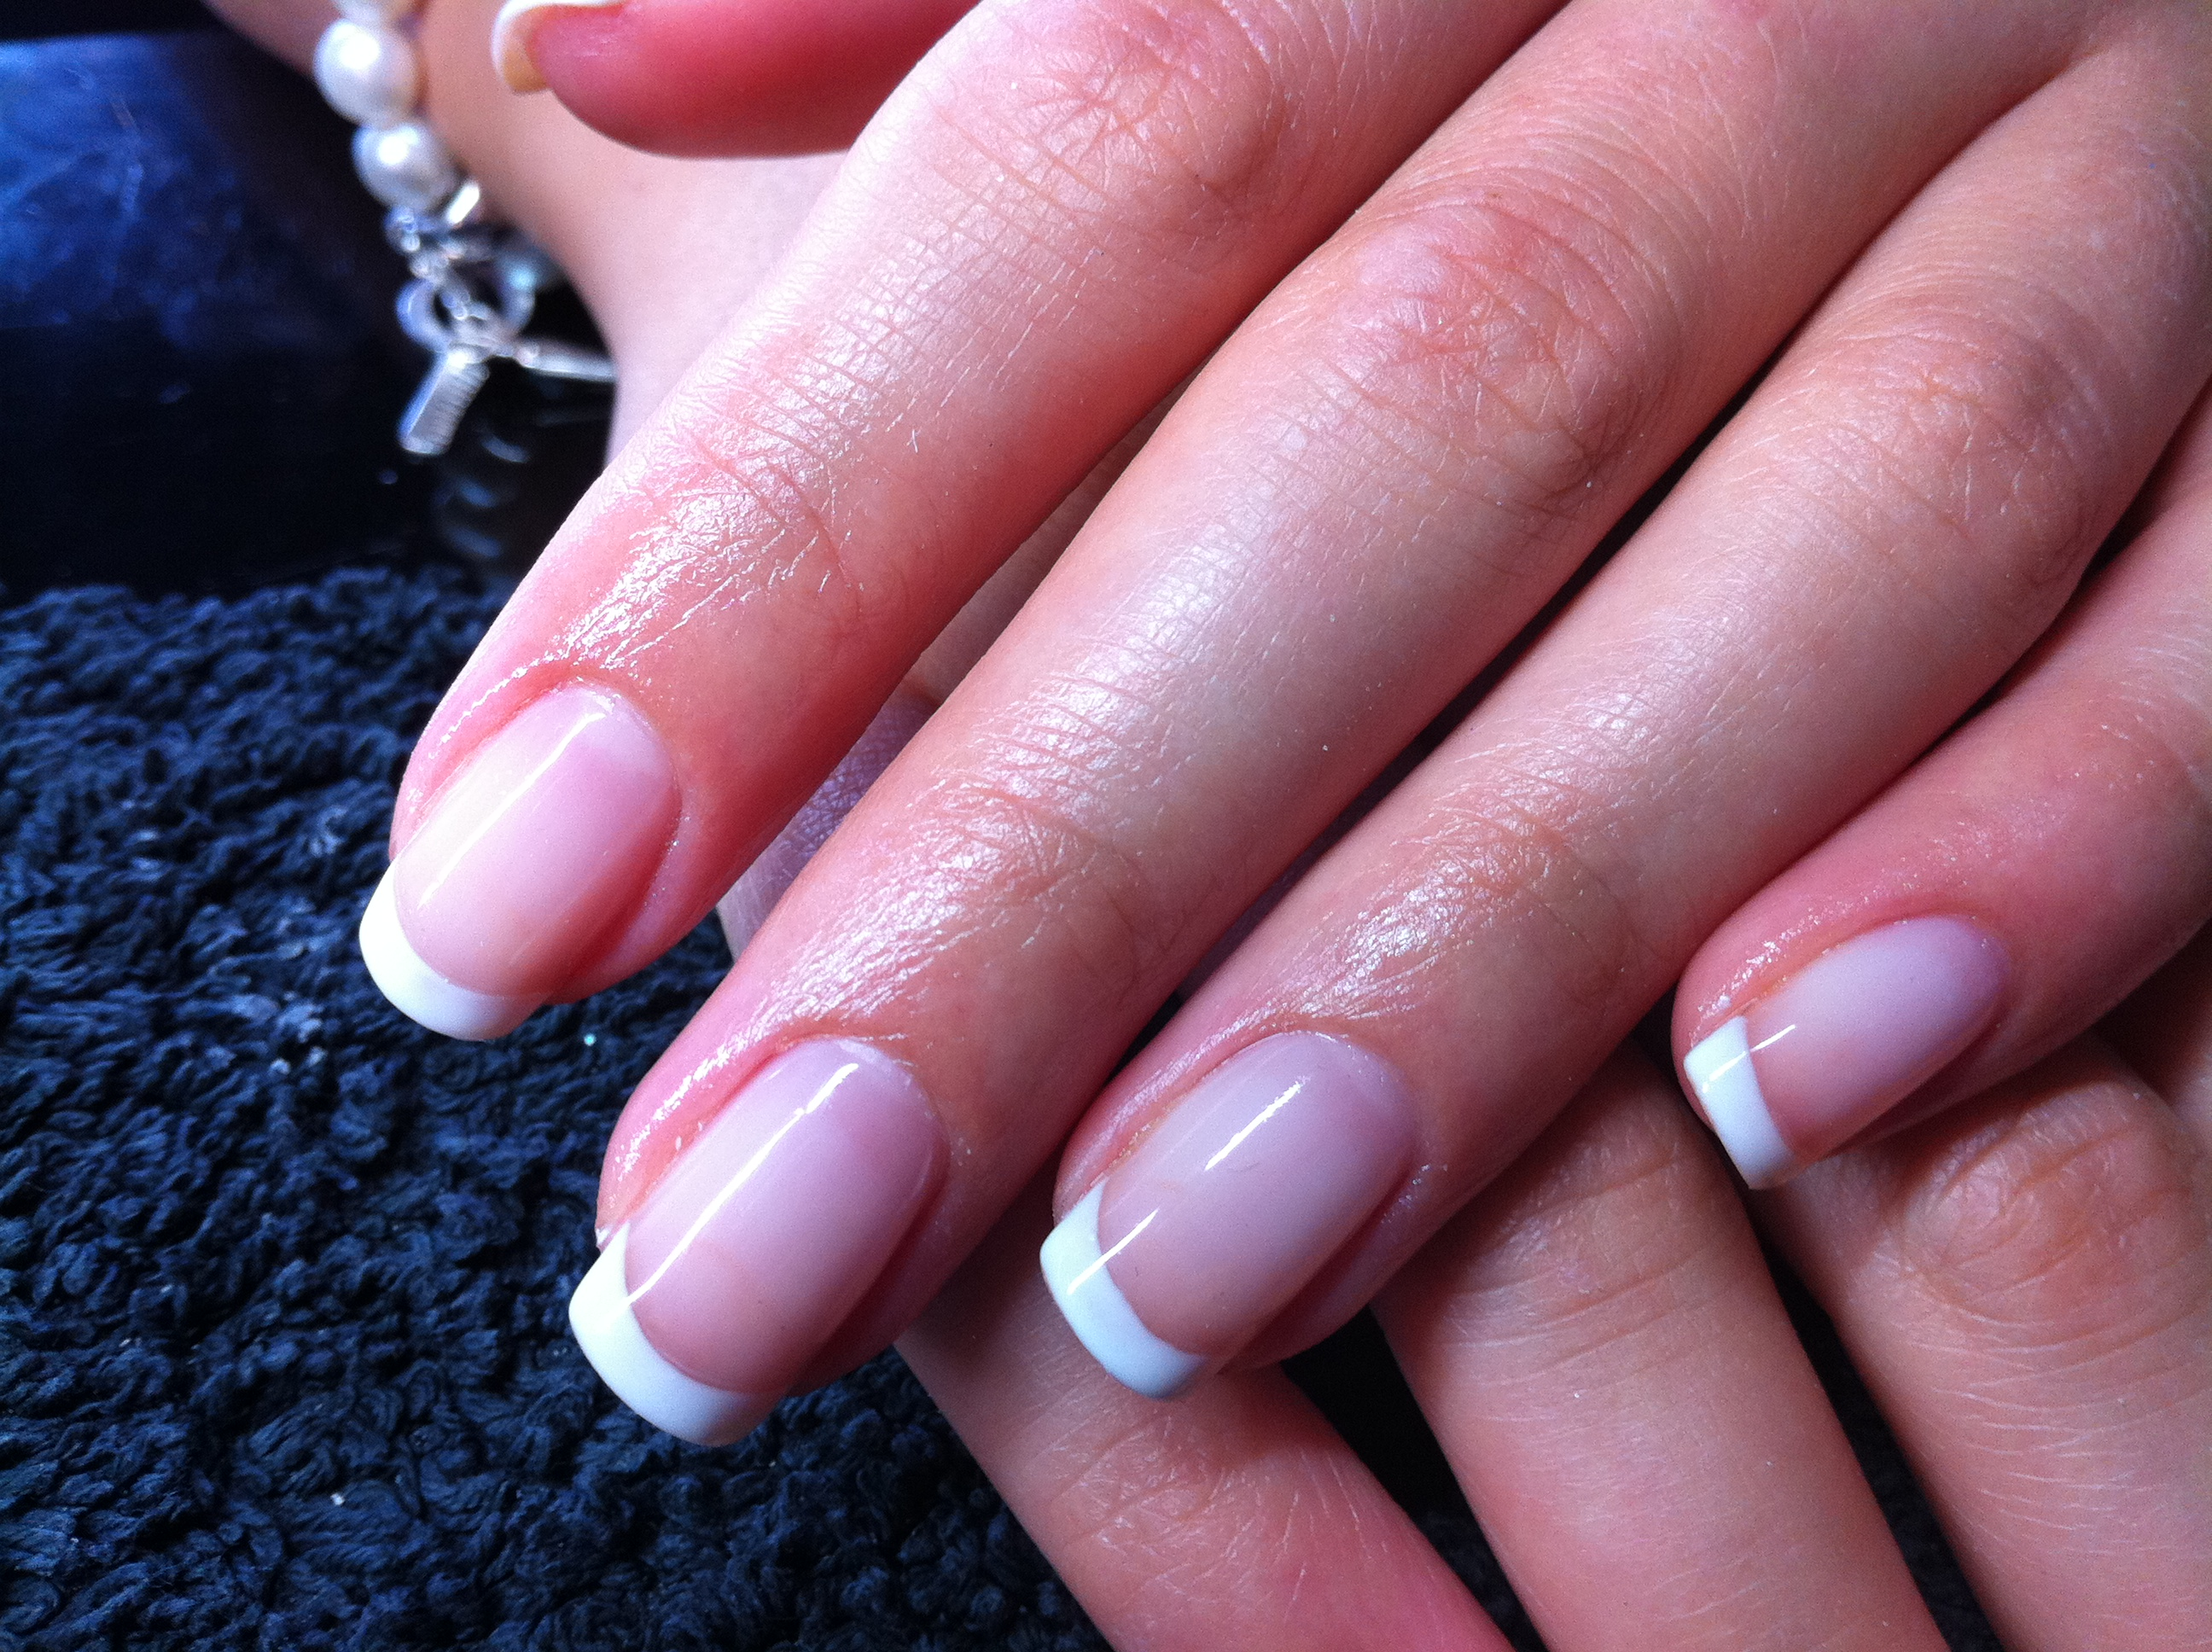 Beautiful Matte Nail Designs That Will Make You Say WoW